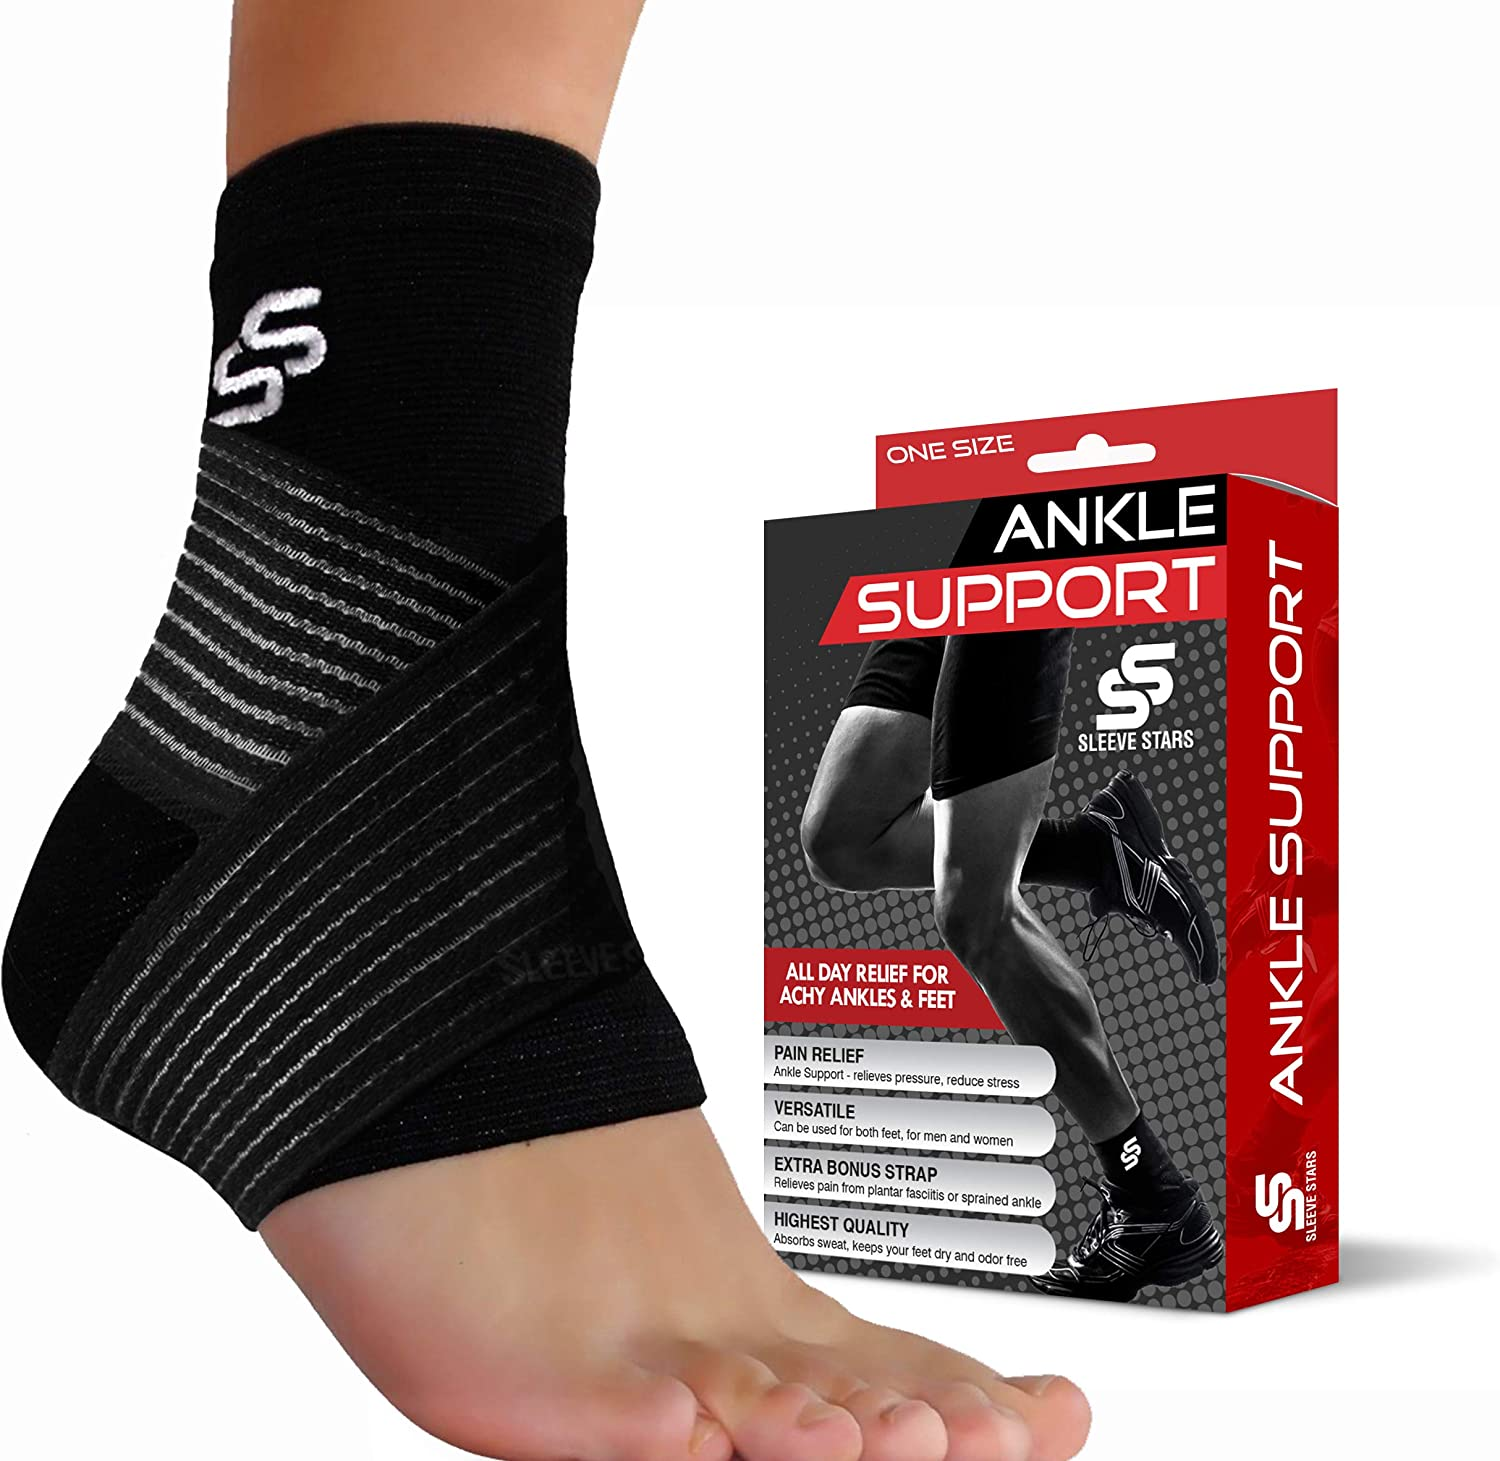 Sleeve Stars Ankle Brace for Plantar Fasciitis and Foot Support - Ankle  Wrap for Sprain, Achilles, Tendonitis & Heel Pain Relief for Women & Men:  Amazon.co.uk: Sports & Outdoors